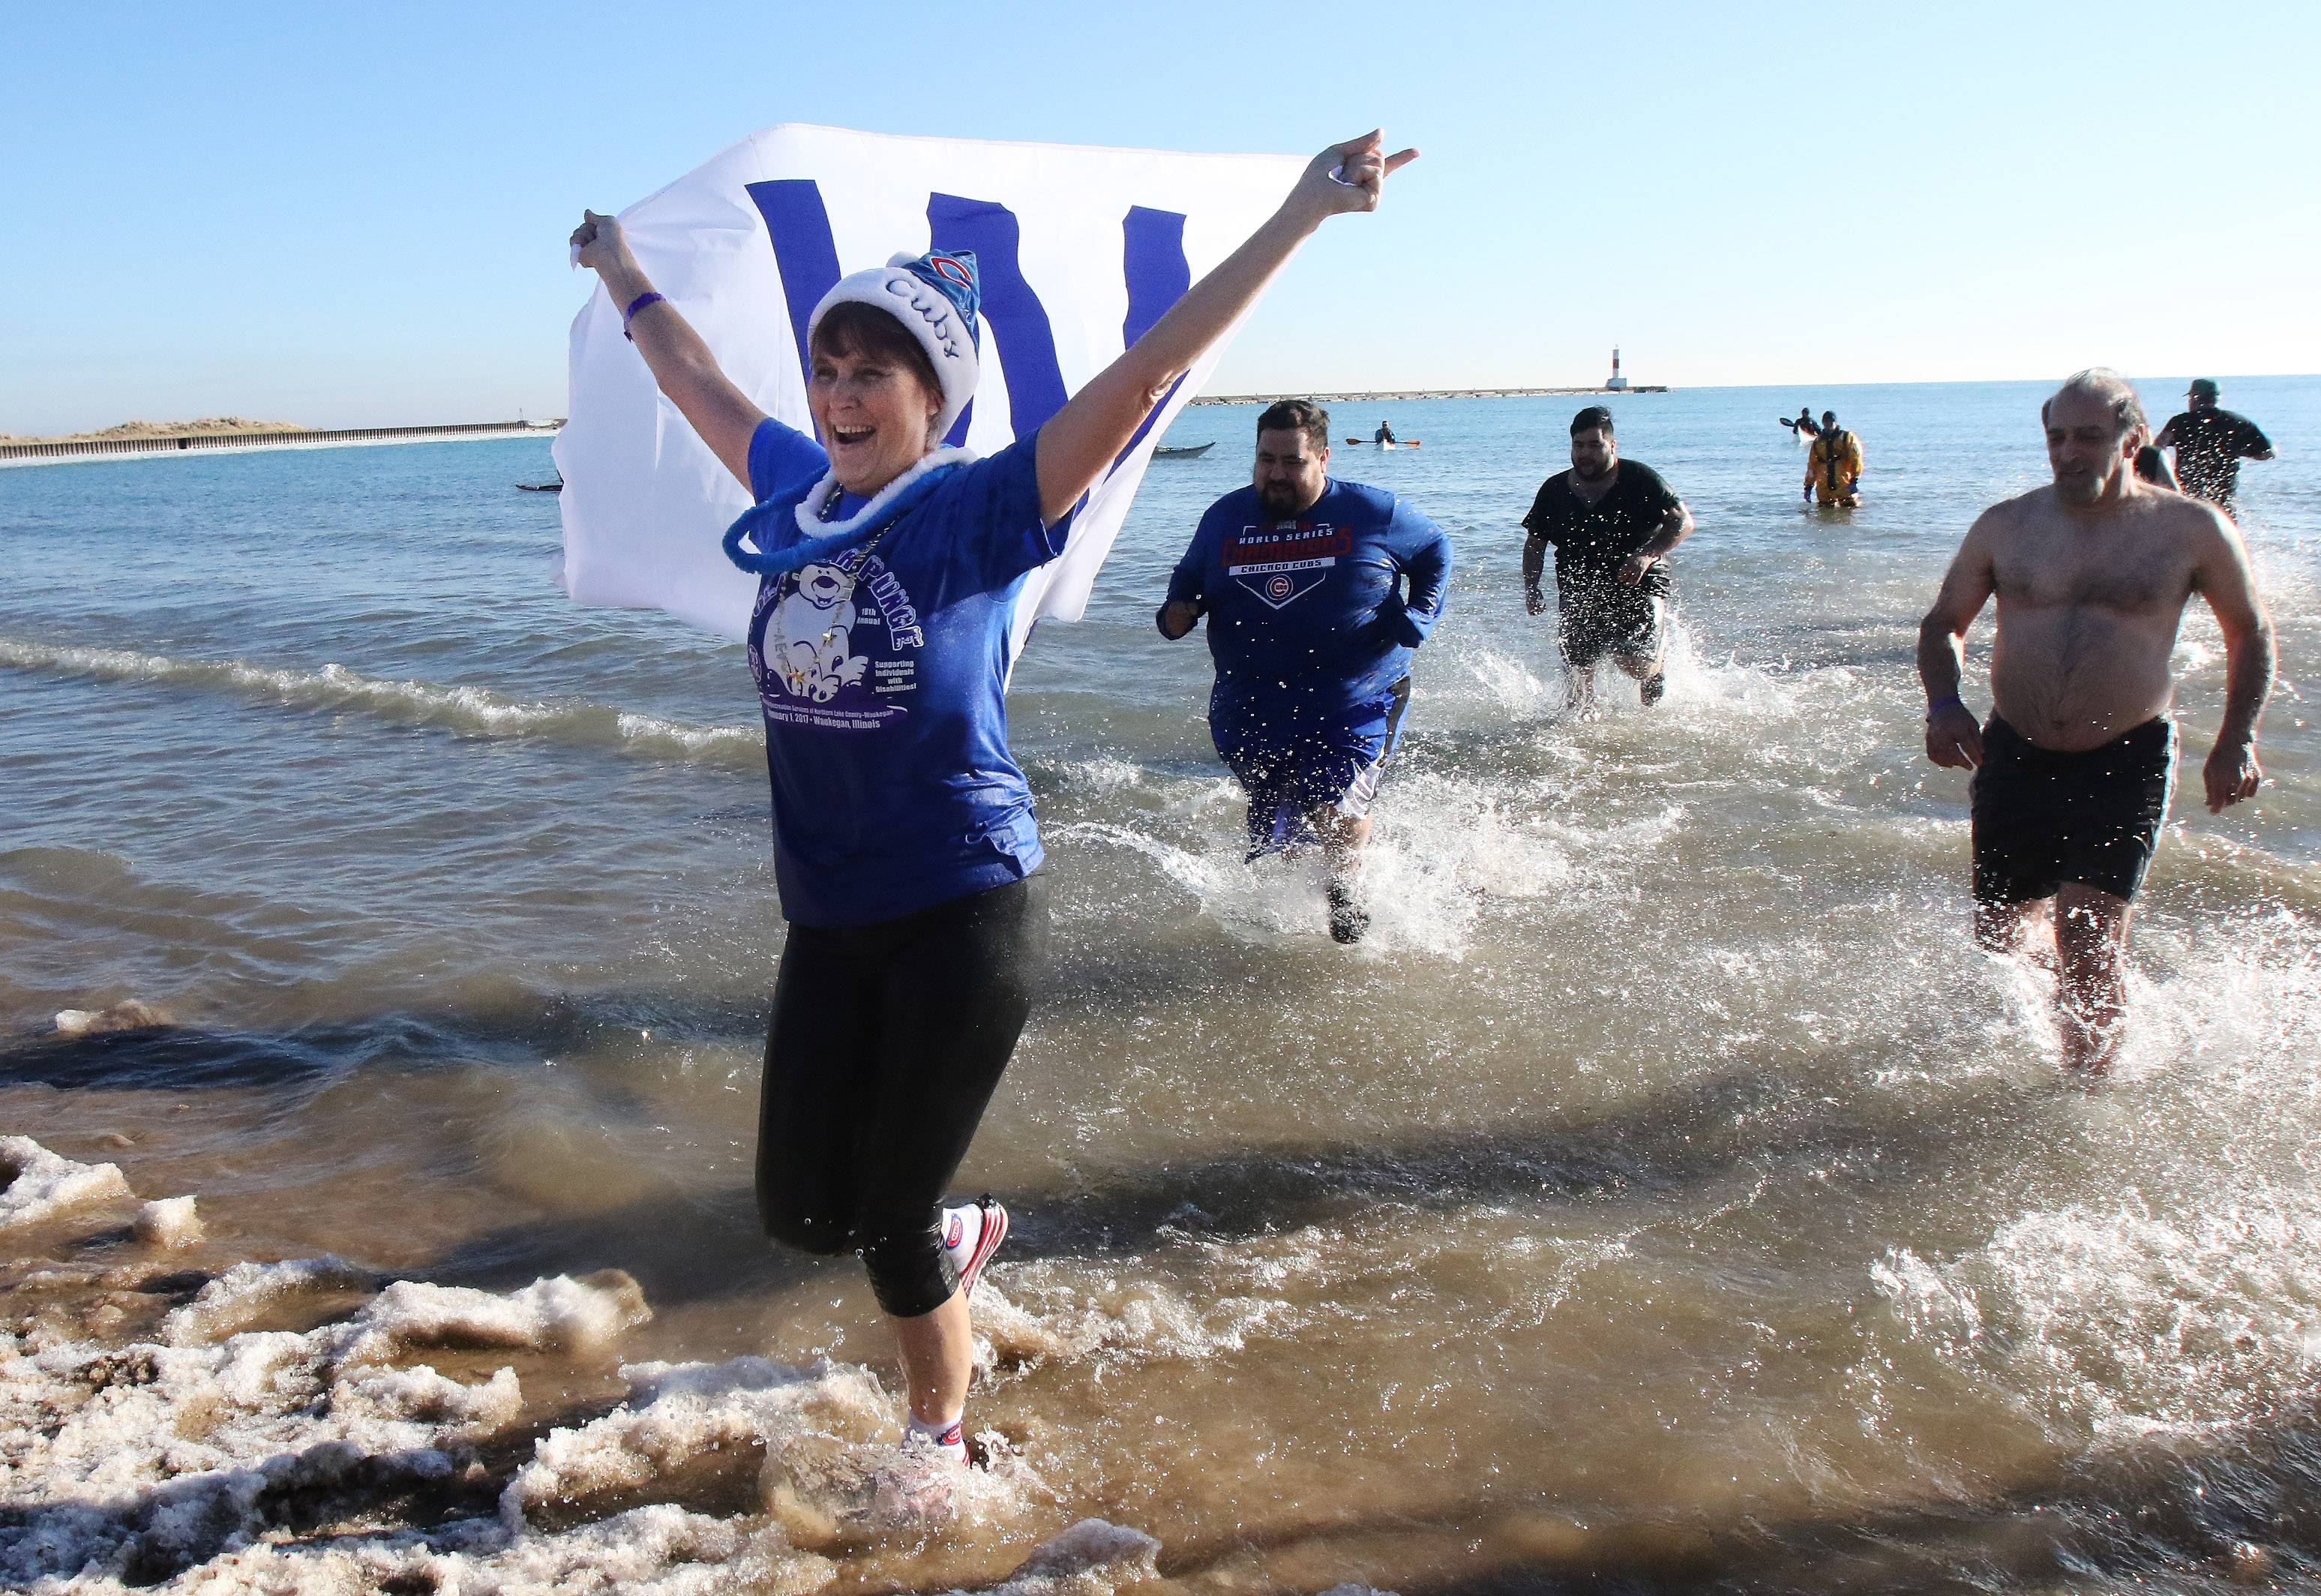 Cubs fan Diane Cullen of Grayslake comes out of the lake after participating in the 18th Annual Polar Bear Plunge on New Year's Day at the Waukegan Municipal Beach. The event was sponsored by the City of Waukegan and the Waukegan Park District to support the Special Recreation Services of Northern Lake County.